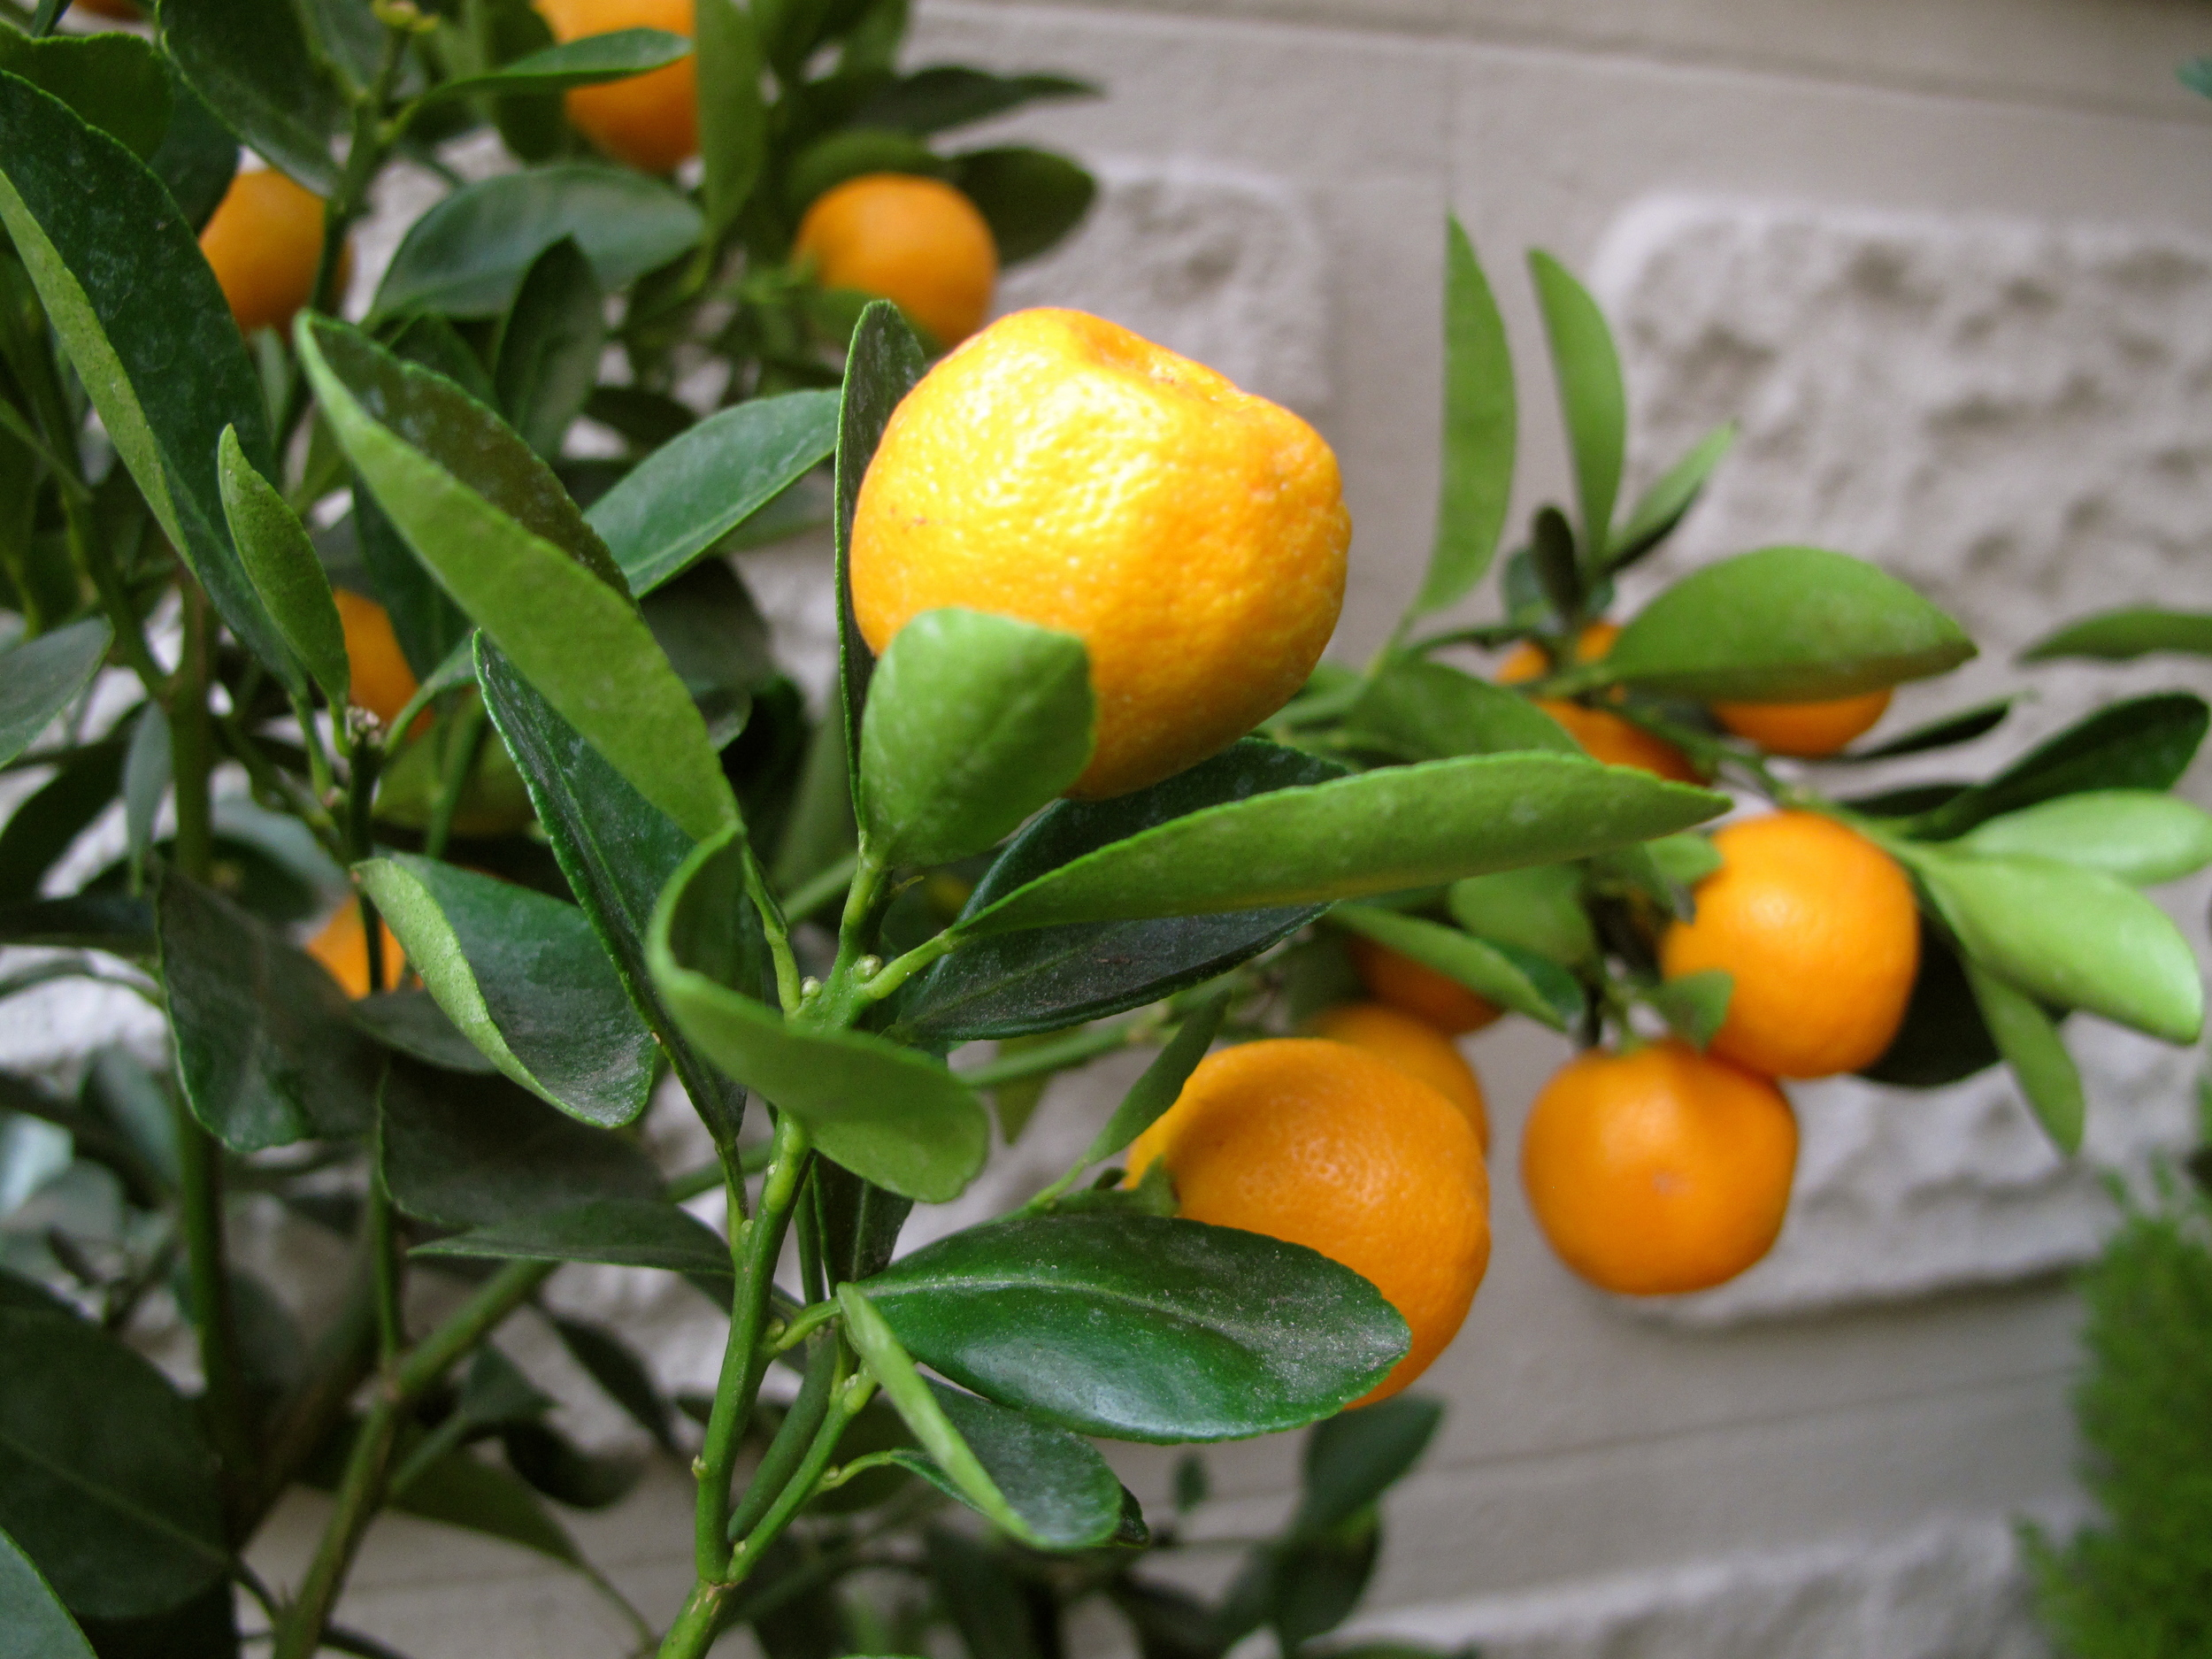 Oranges growing on trees along the street in Barcelona